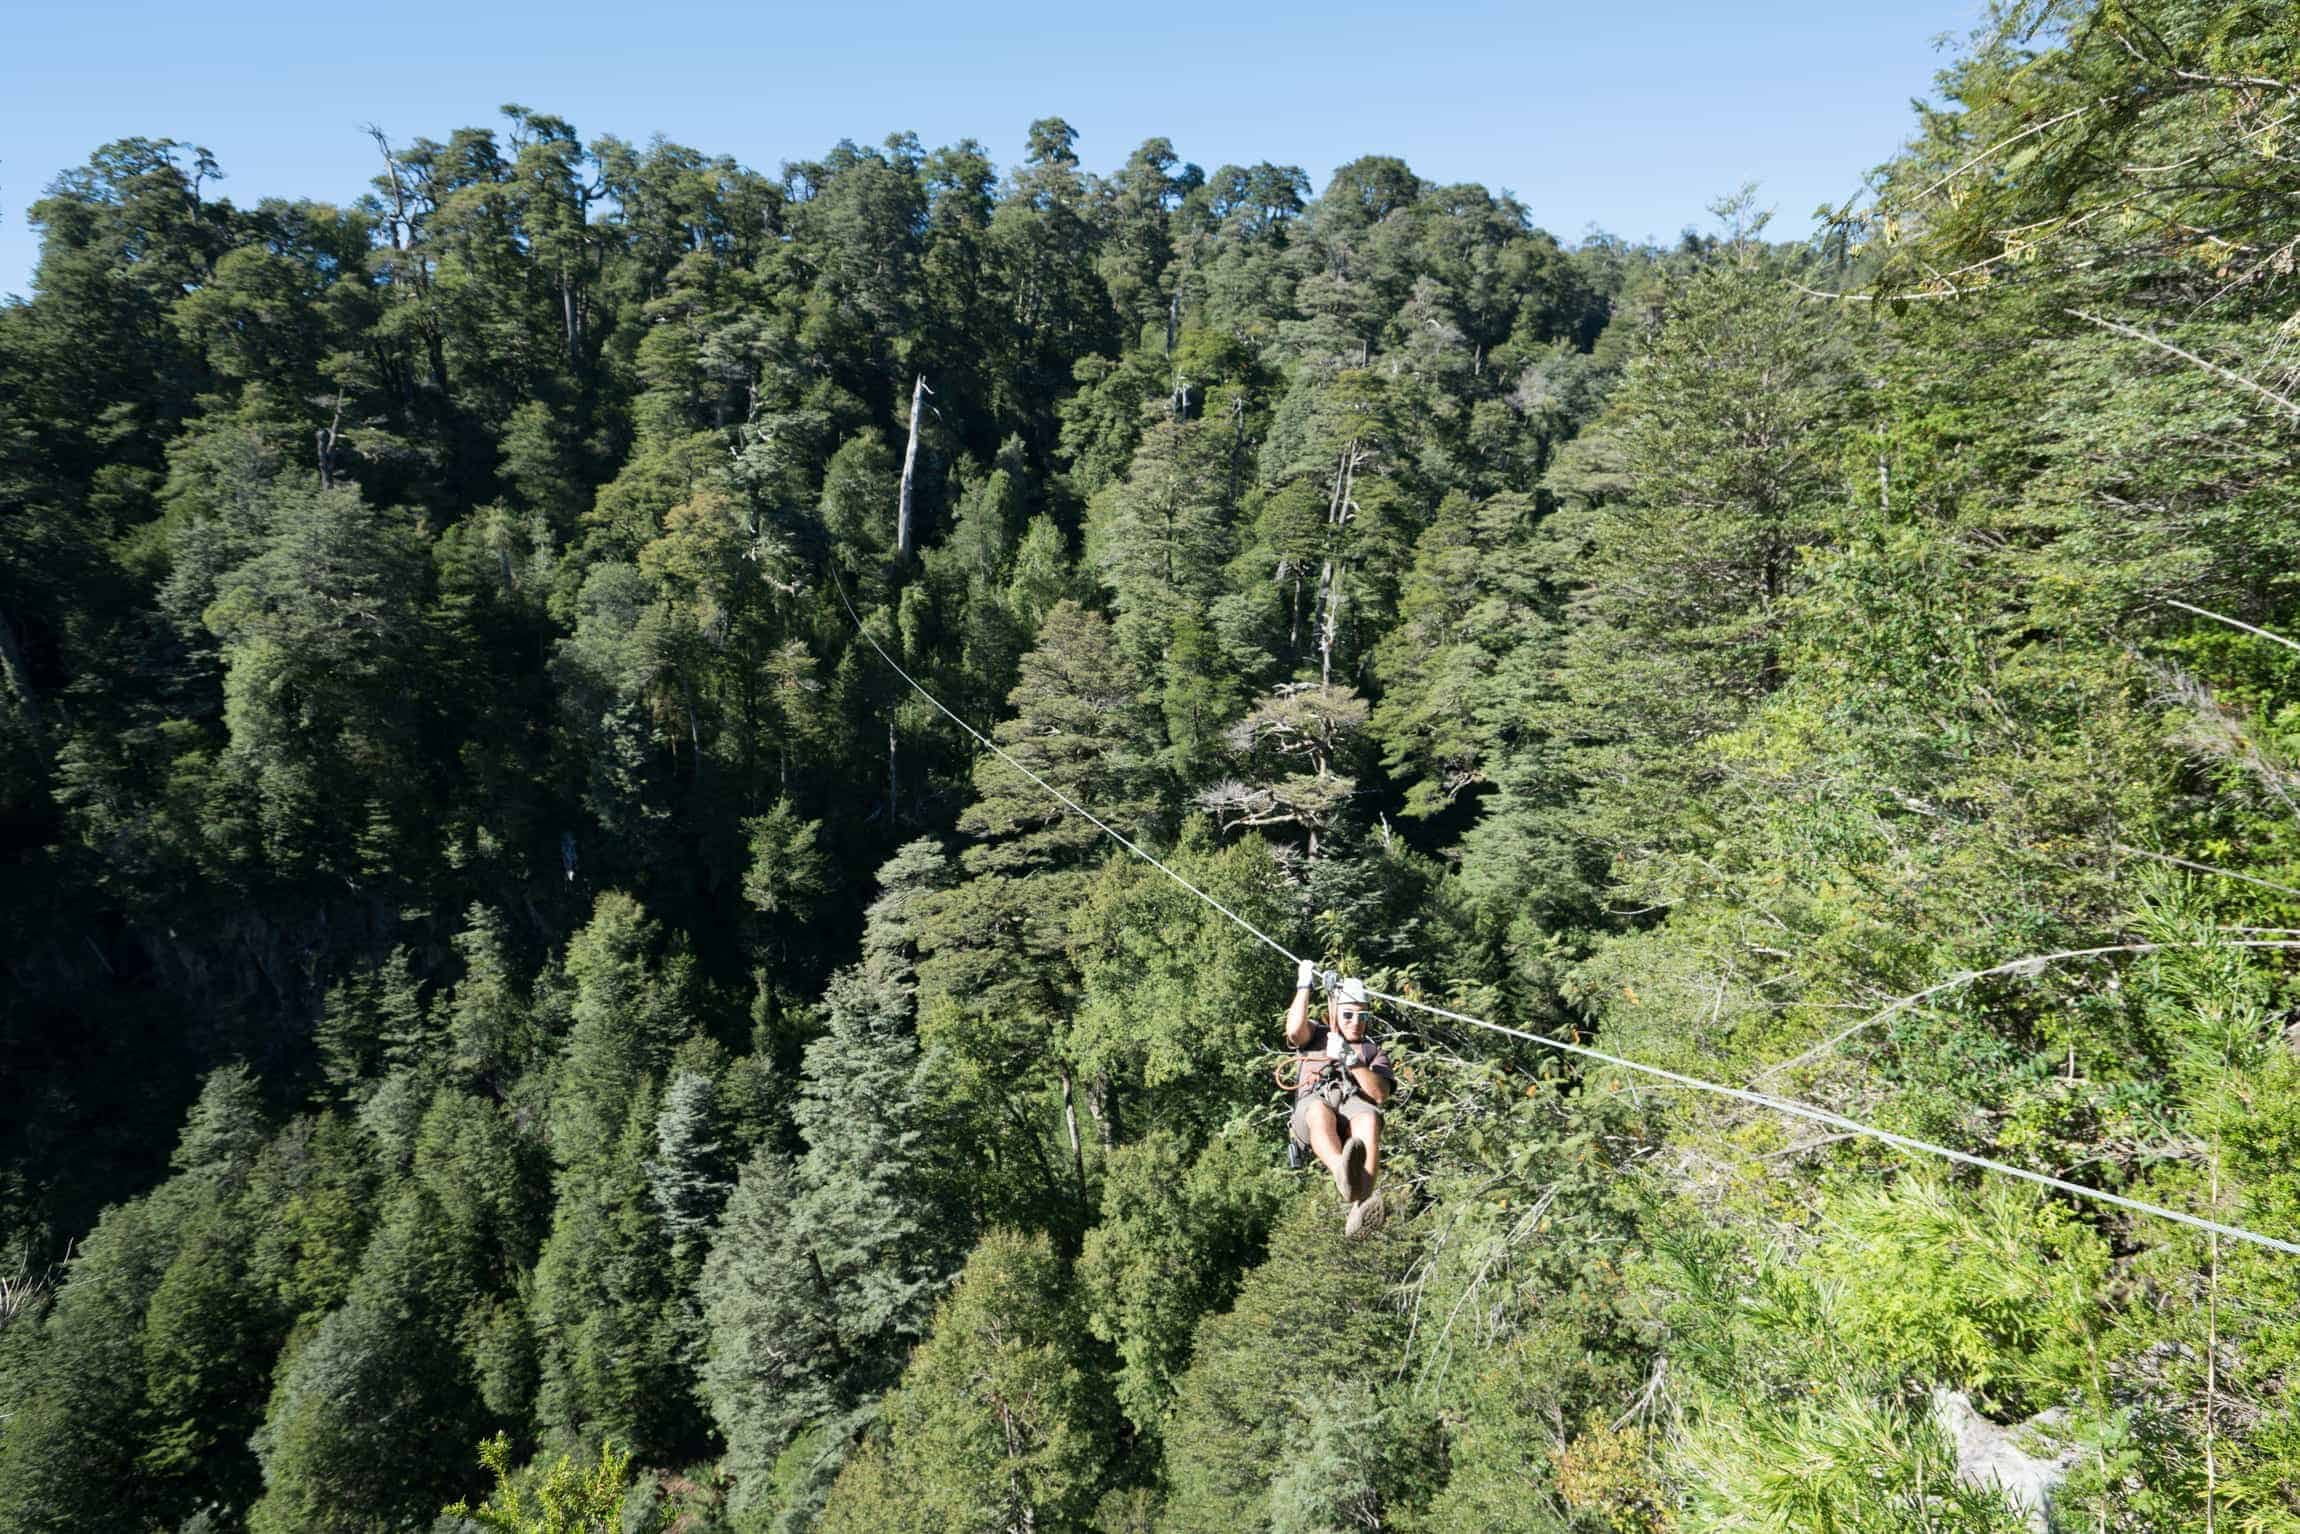 Adrenaline to the Max! Live the most extreme adventure in Chile